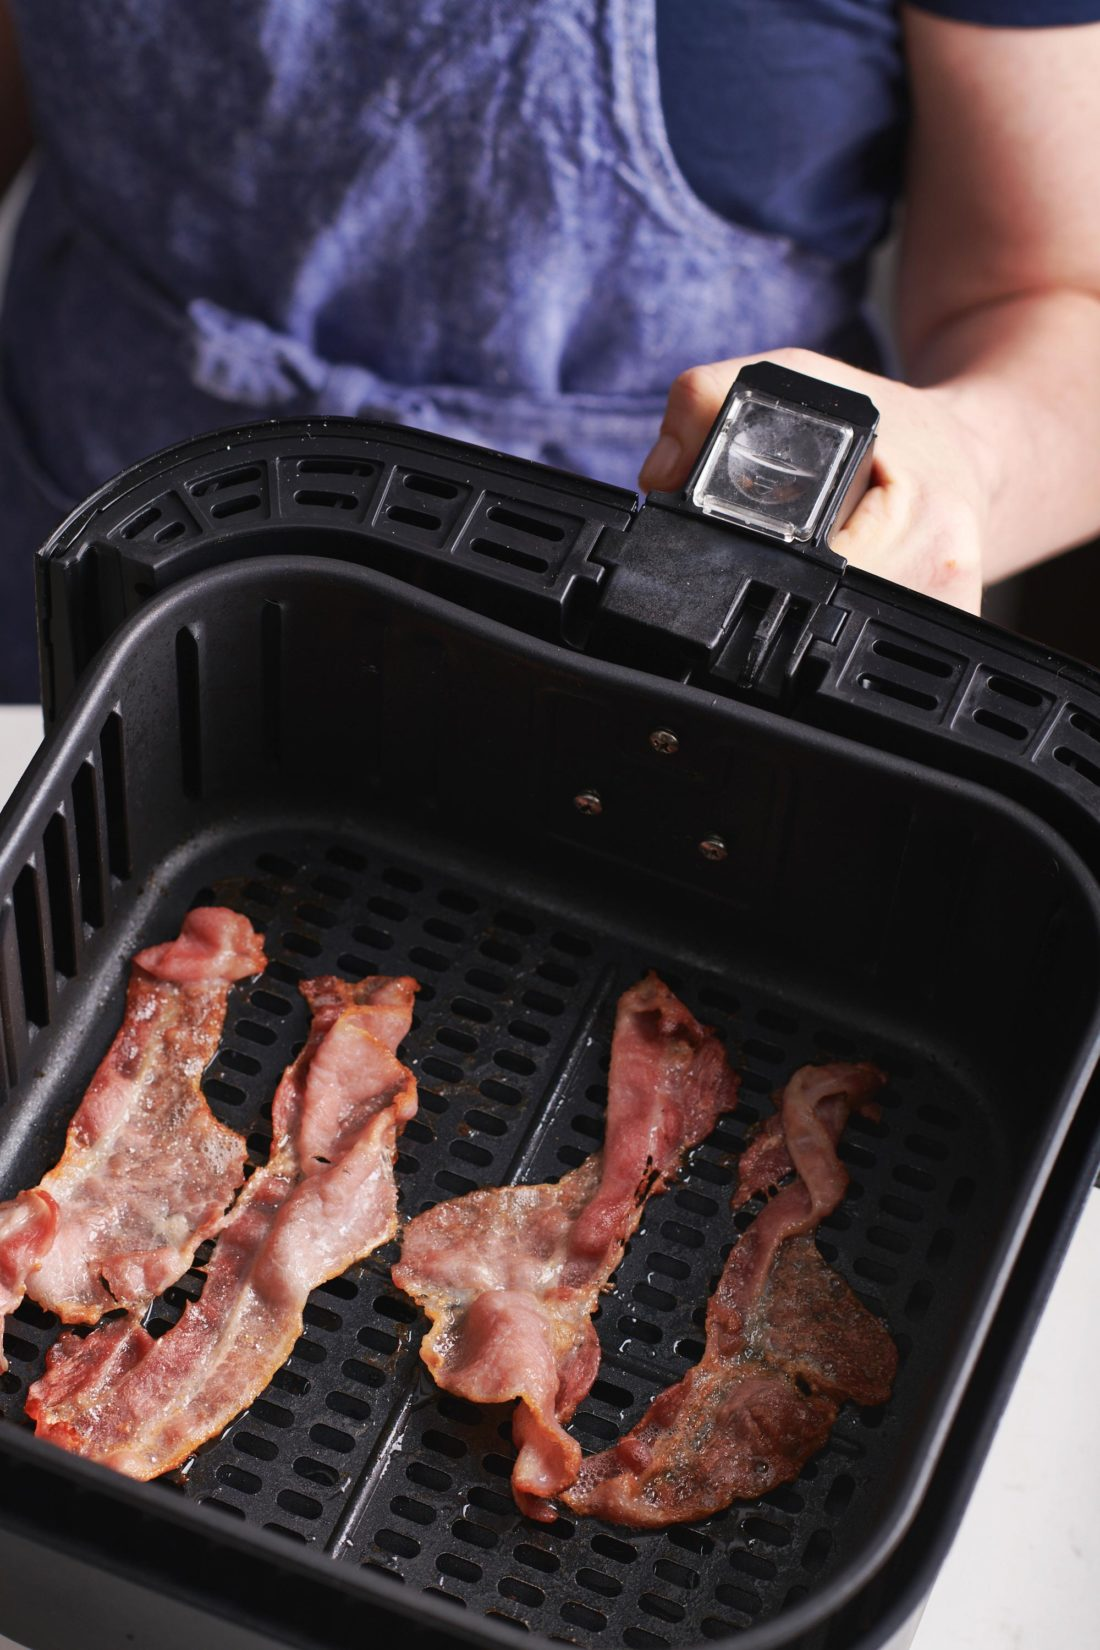 How to Make Bacon in the Air Fryer